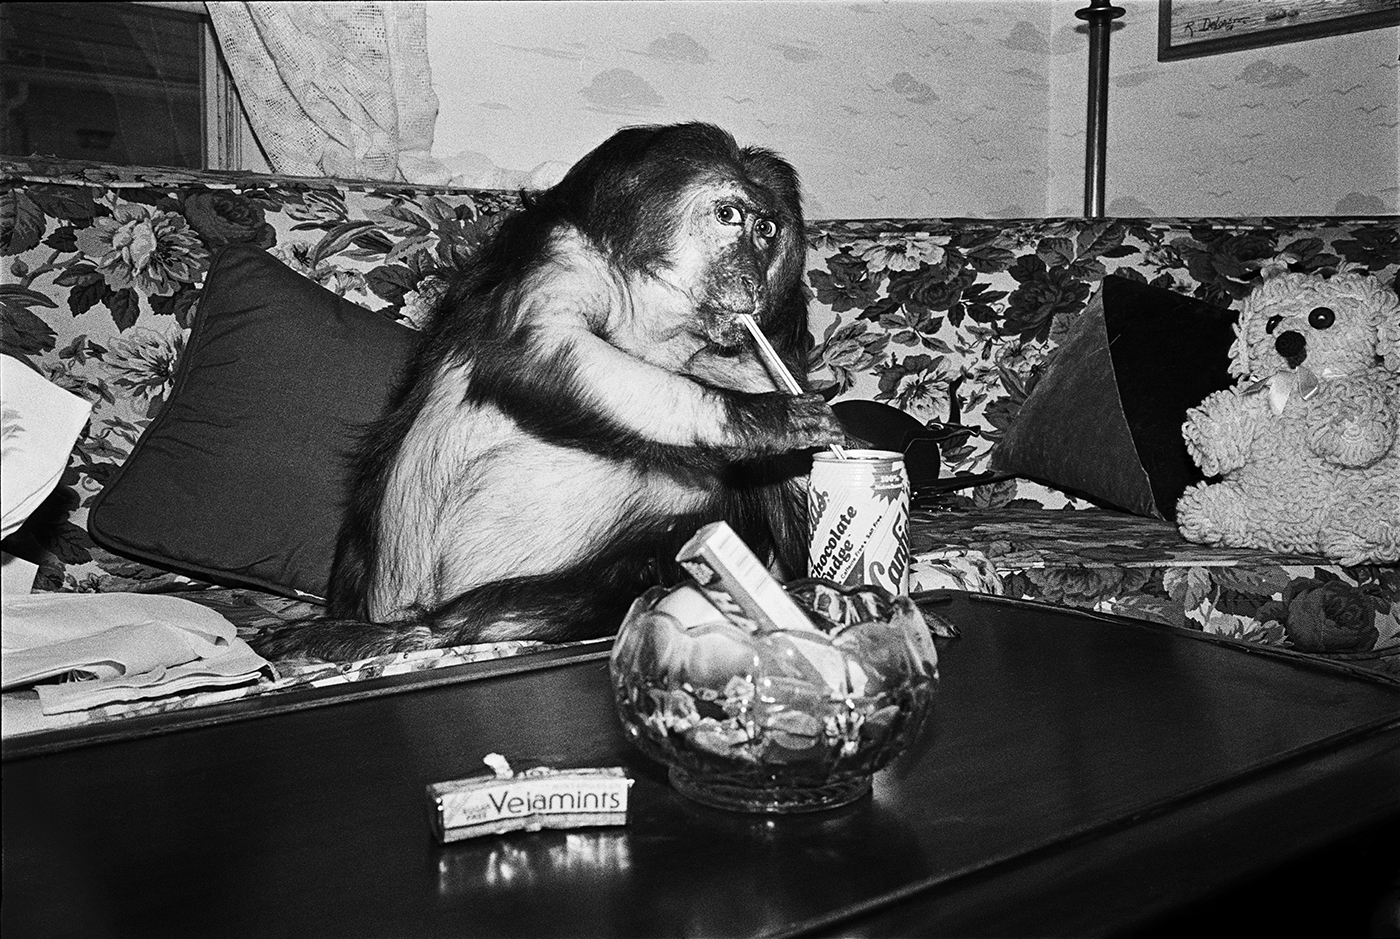 Minnie, 1989. Stump-tailed macaque, female, 13 years old.